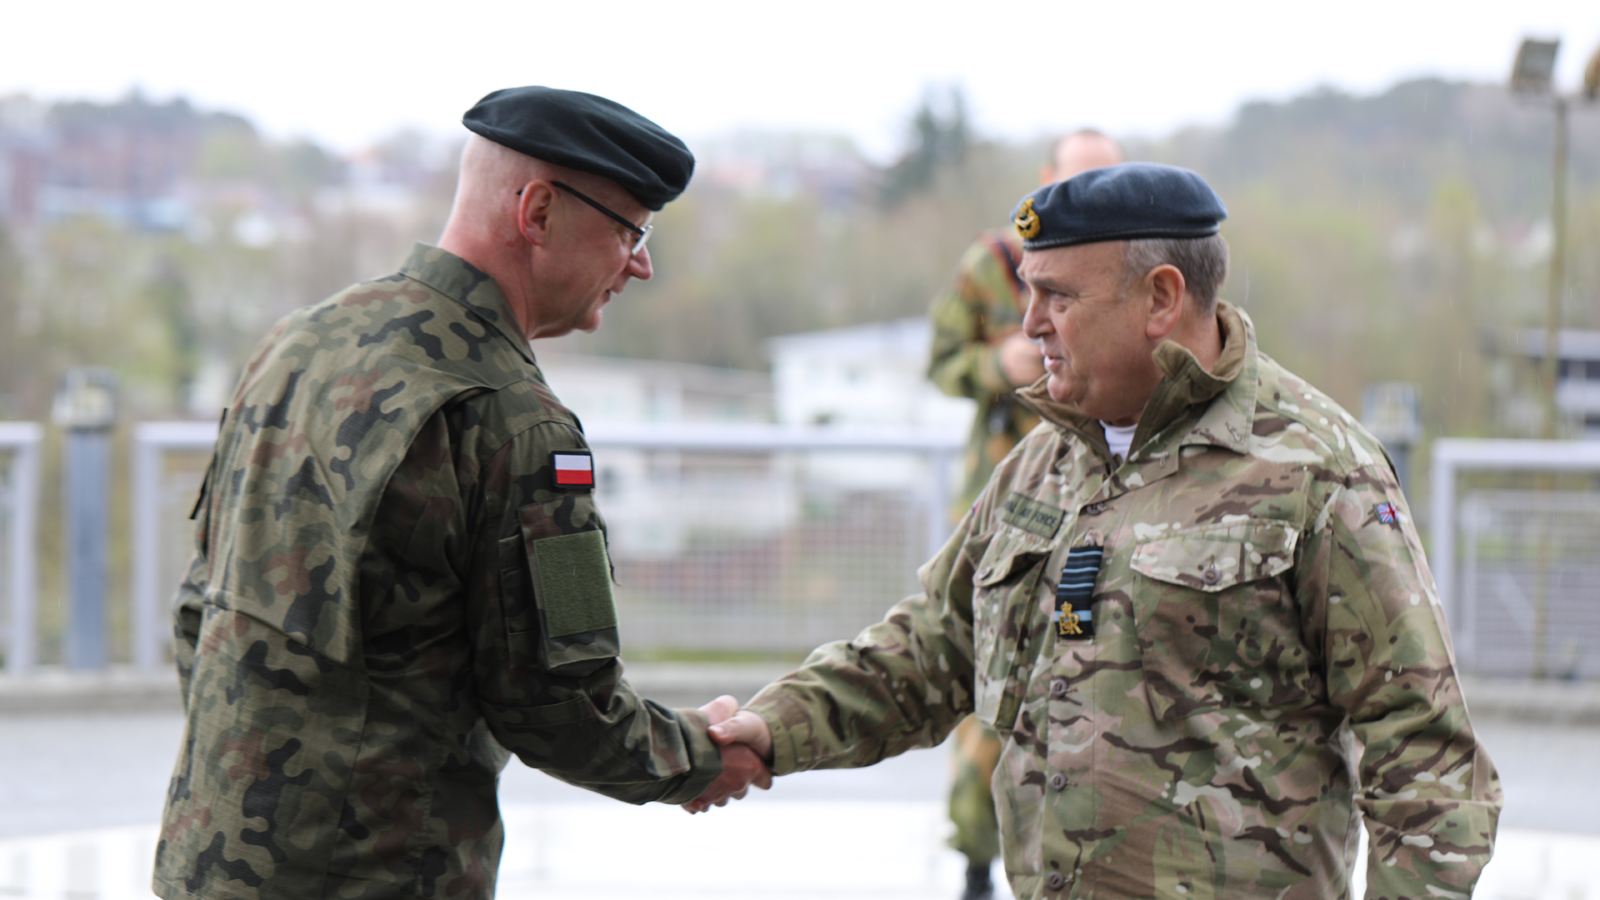 Air Chief Marshal Sir Stuart Peach, British Chief of the Defence Staff and next Chairman of the NATO Military Committee, visits Joint Warfare Centre